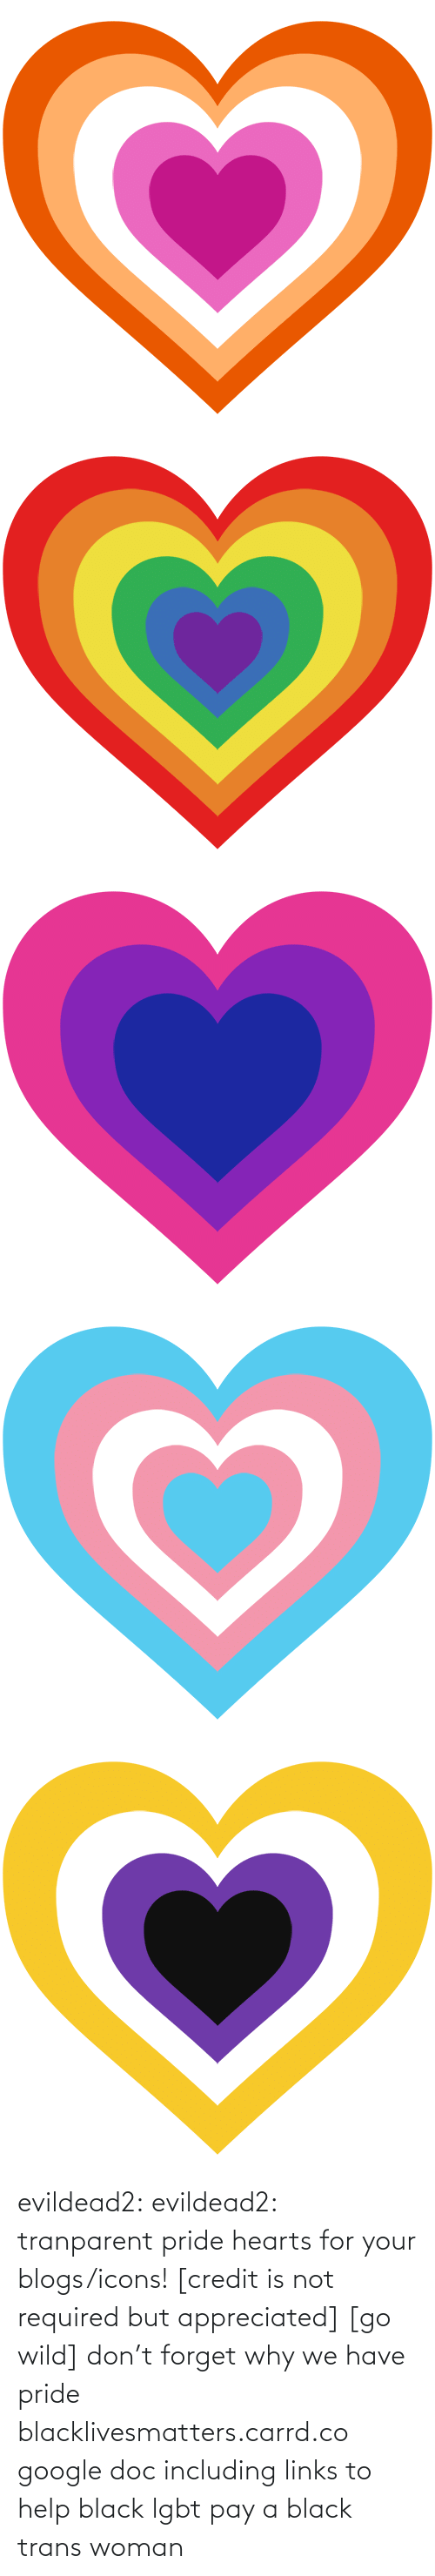 Google, Lgbt, and Tumblr: evildead2:  evildead2:  tranparent pride hearts for your blogs/icons! [credit is not required but appreciated] [go wild]      don't forget why we have pride  blacklivesmatters.carrd.co  google doc including links to help black lgbt pay a black trans woman